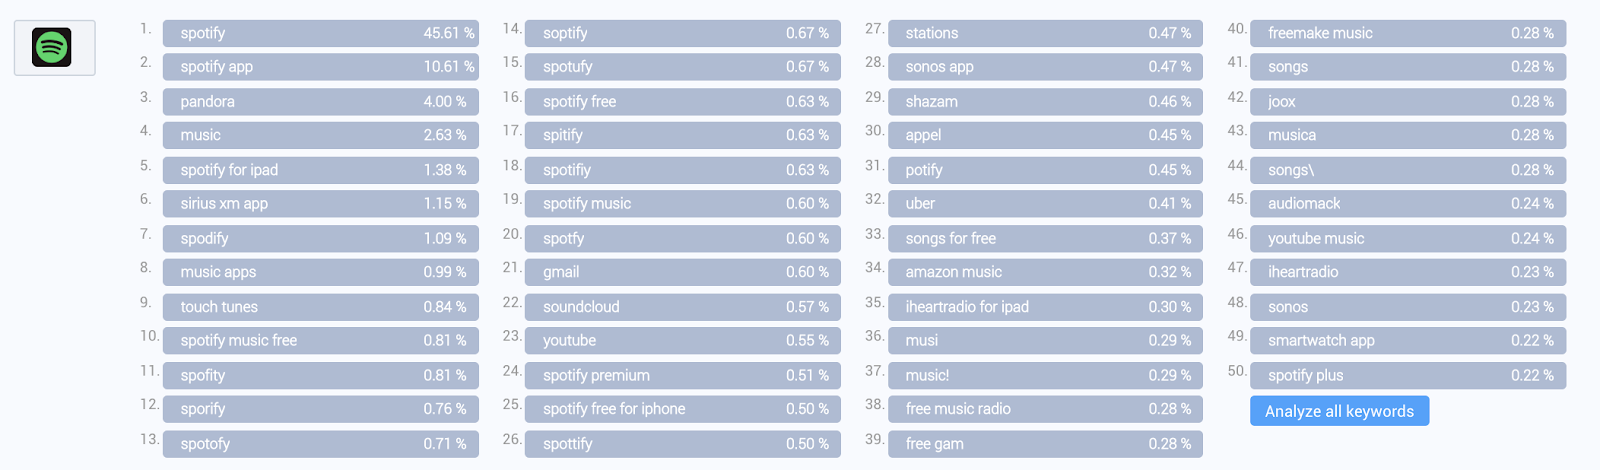 Top Download keywords of Spotify on the Apple App Store (United States)